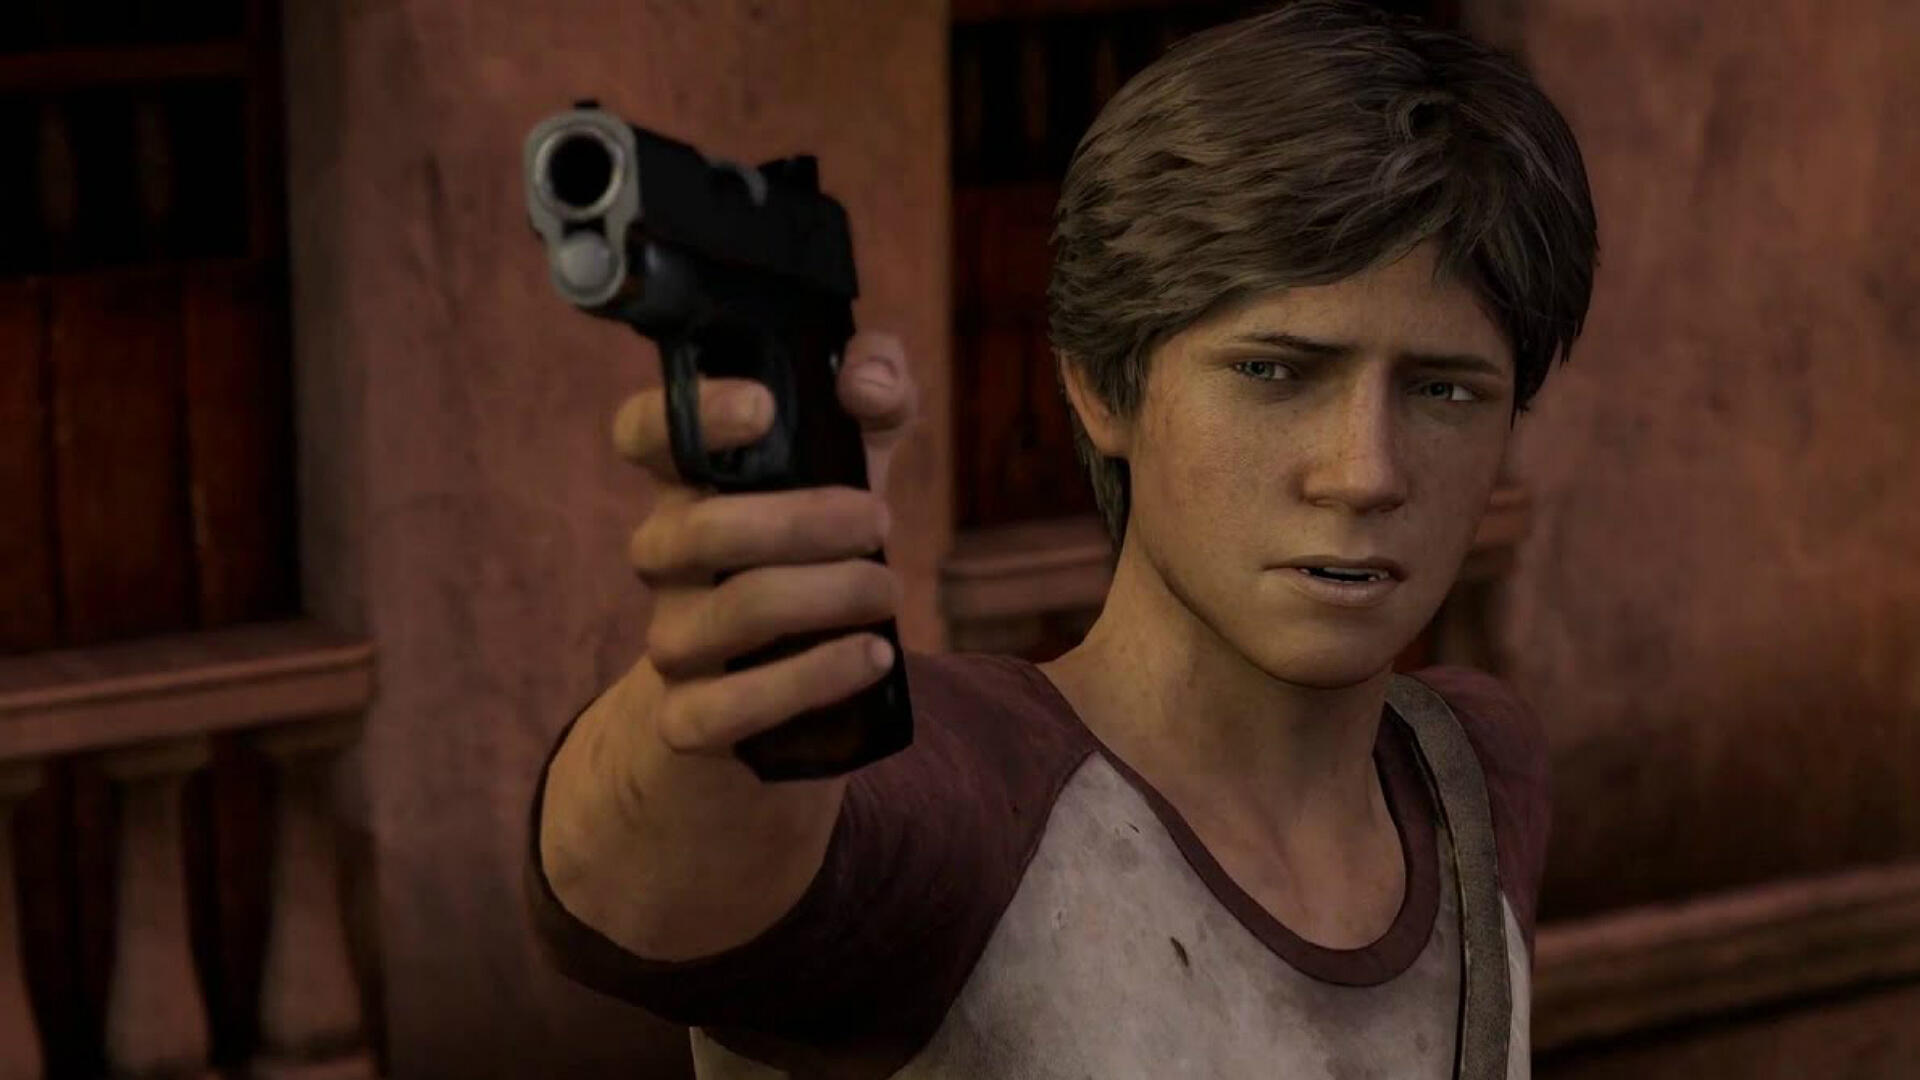 Bumblebee Director Signs on to Direct the Uncharted Movie